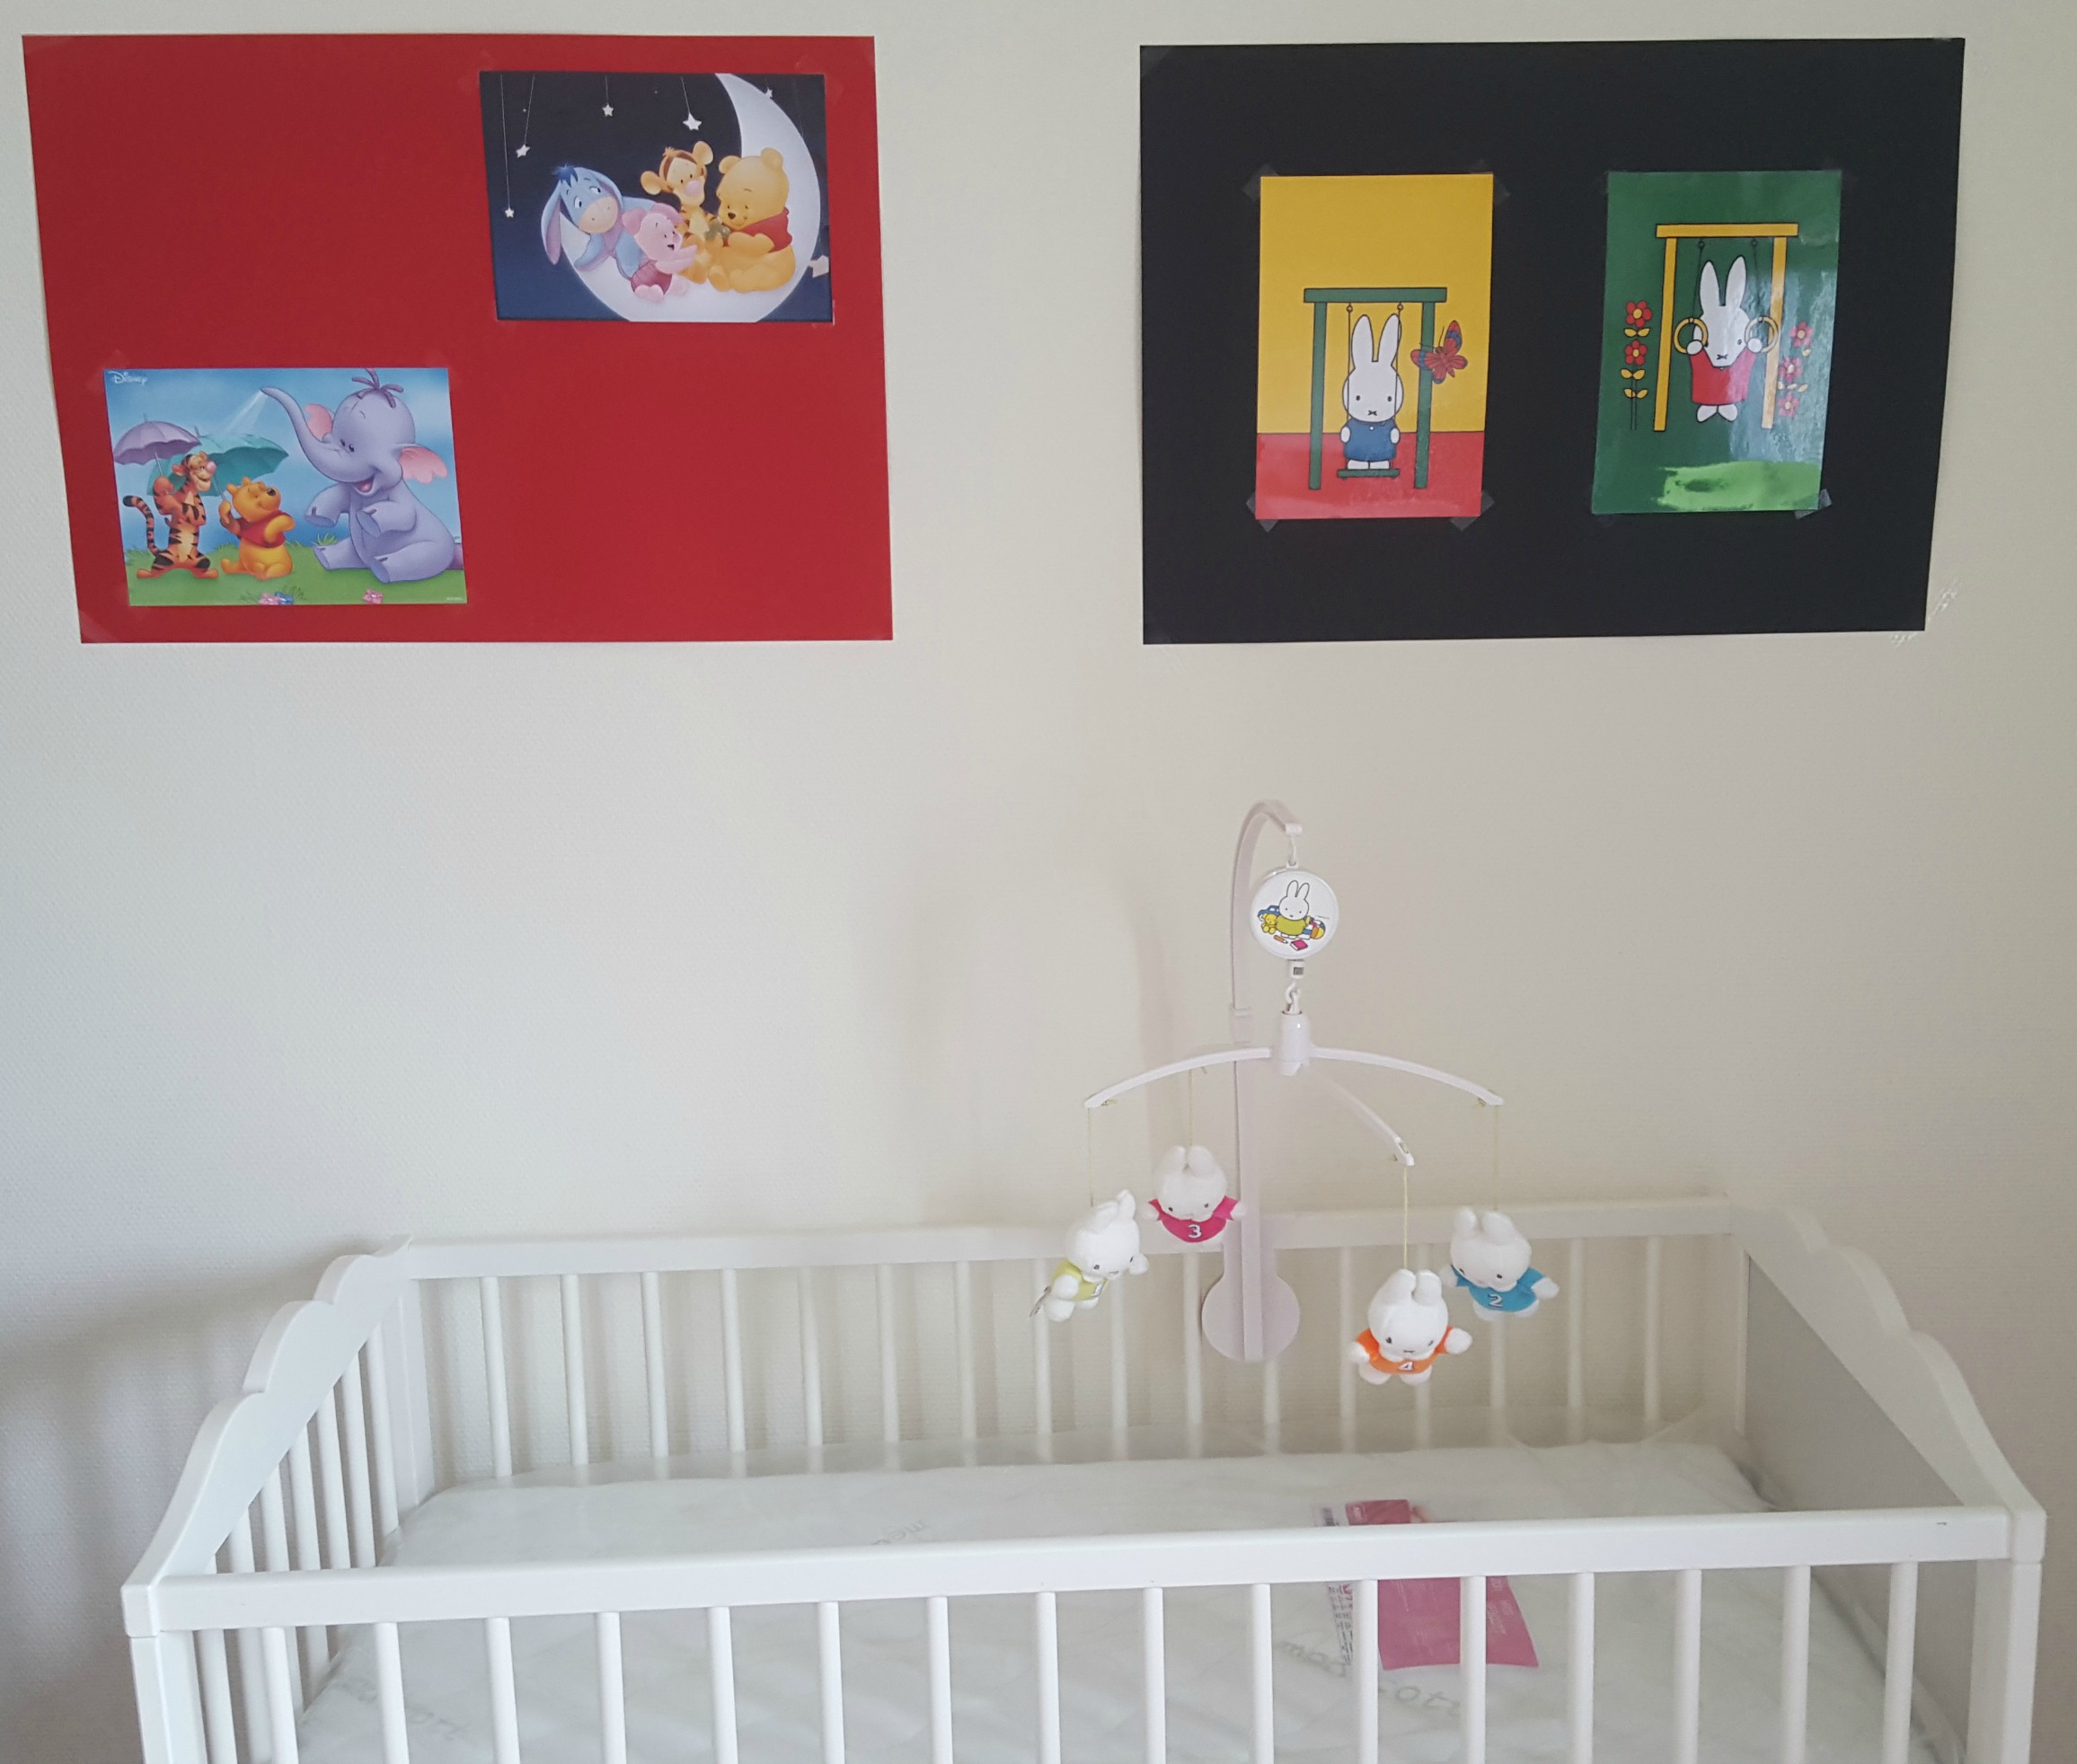 'Week 28: In het derde trimester aangekomen' In week 28 zijn we in het derde trimester aangekomen, regelen we de laatste dingen van de babyuitzetlijst en is onze babykamer af. Lees het op http://meemoeder.com/week-28/